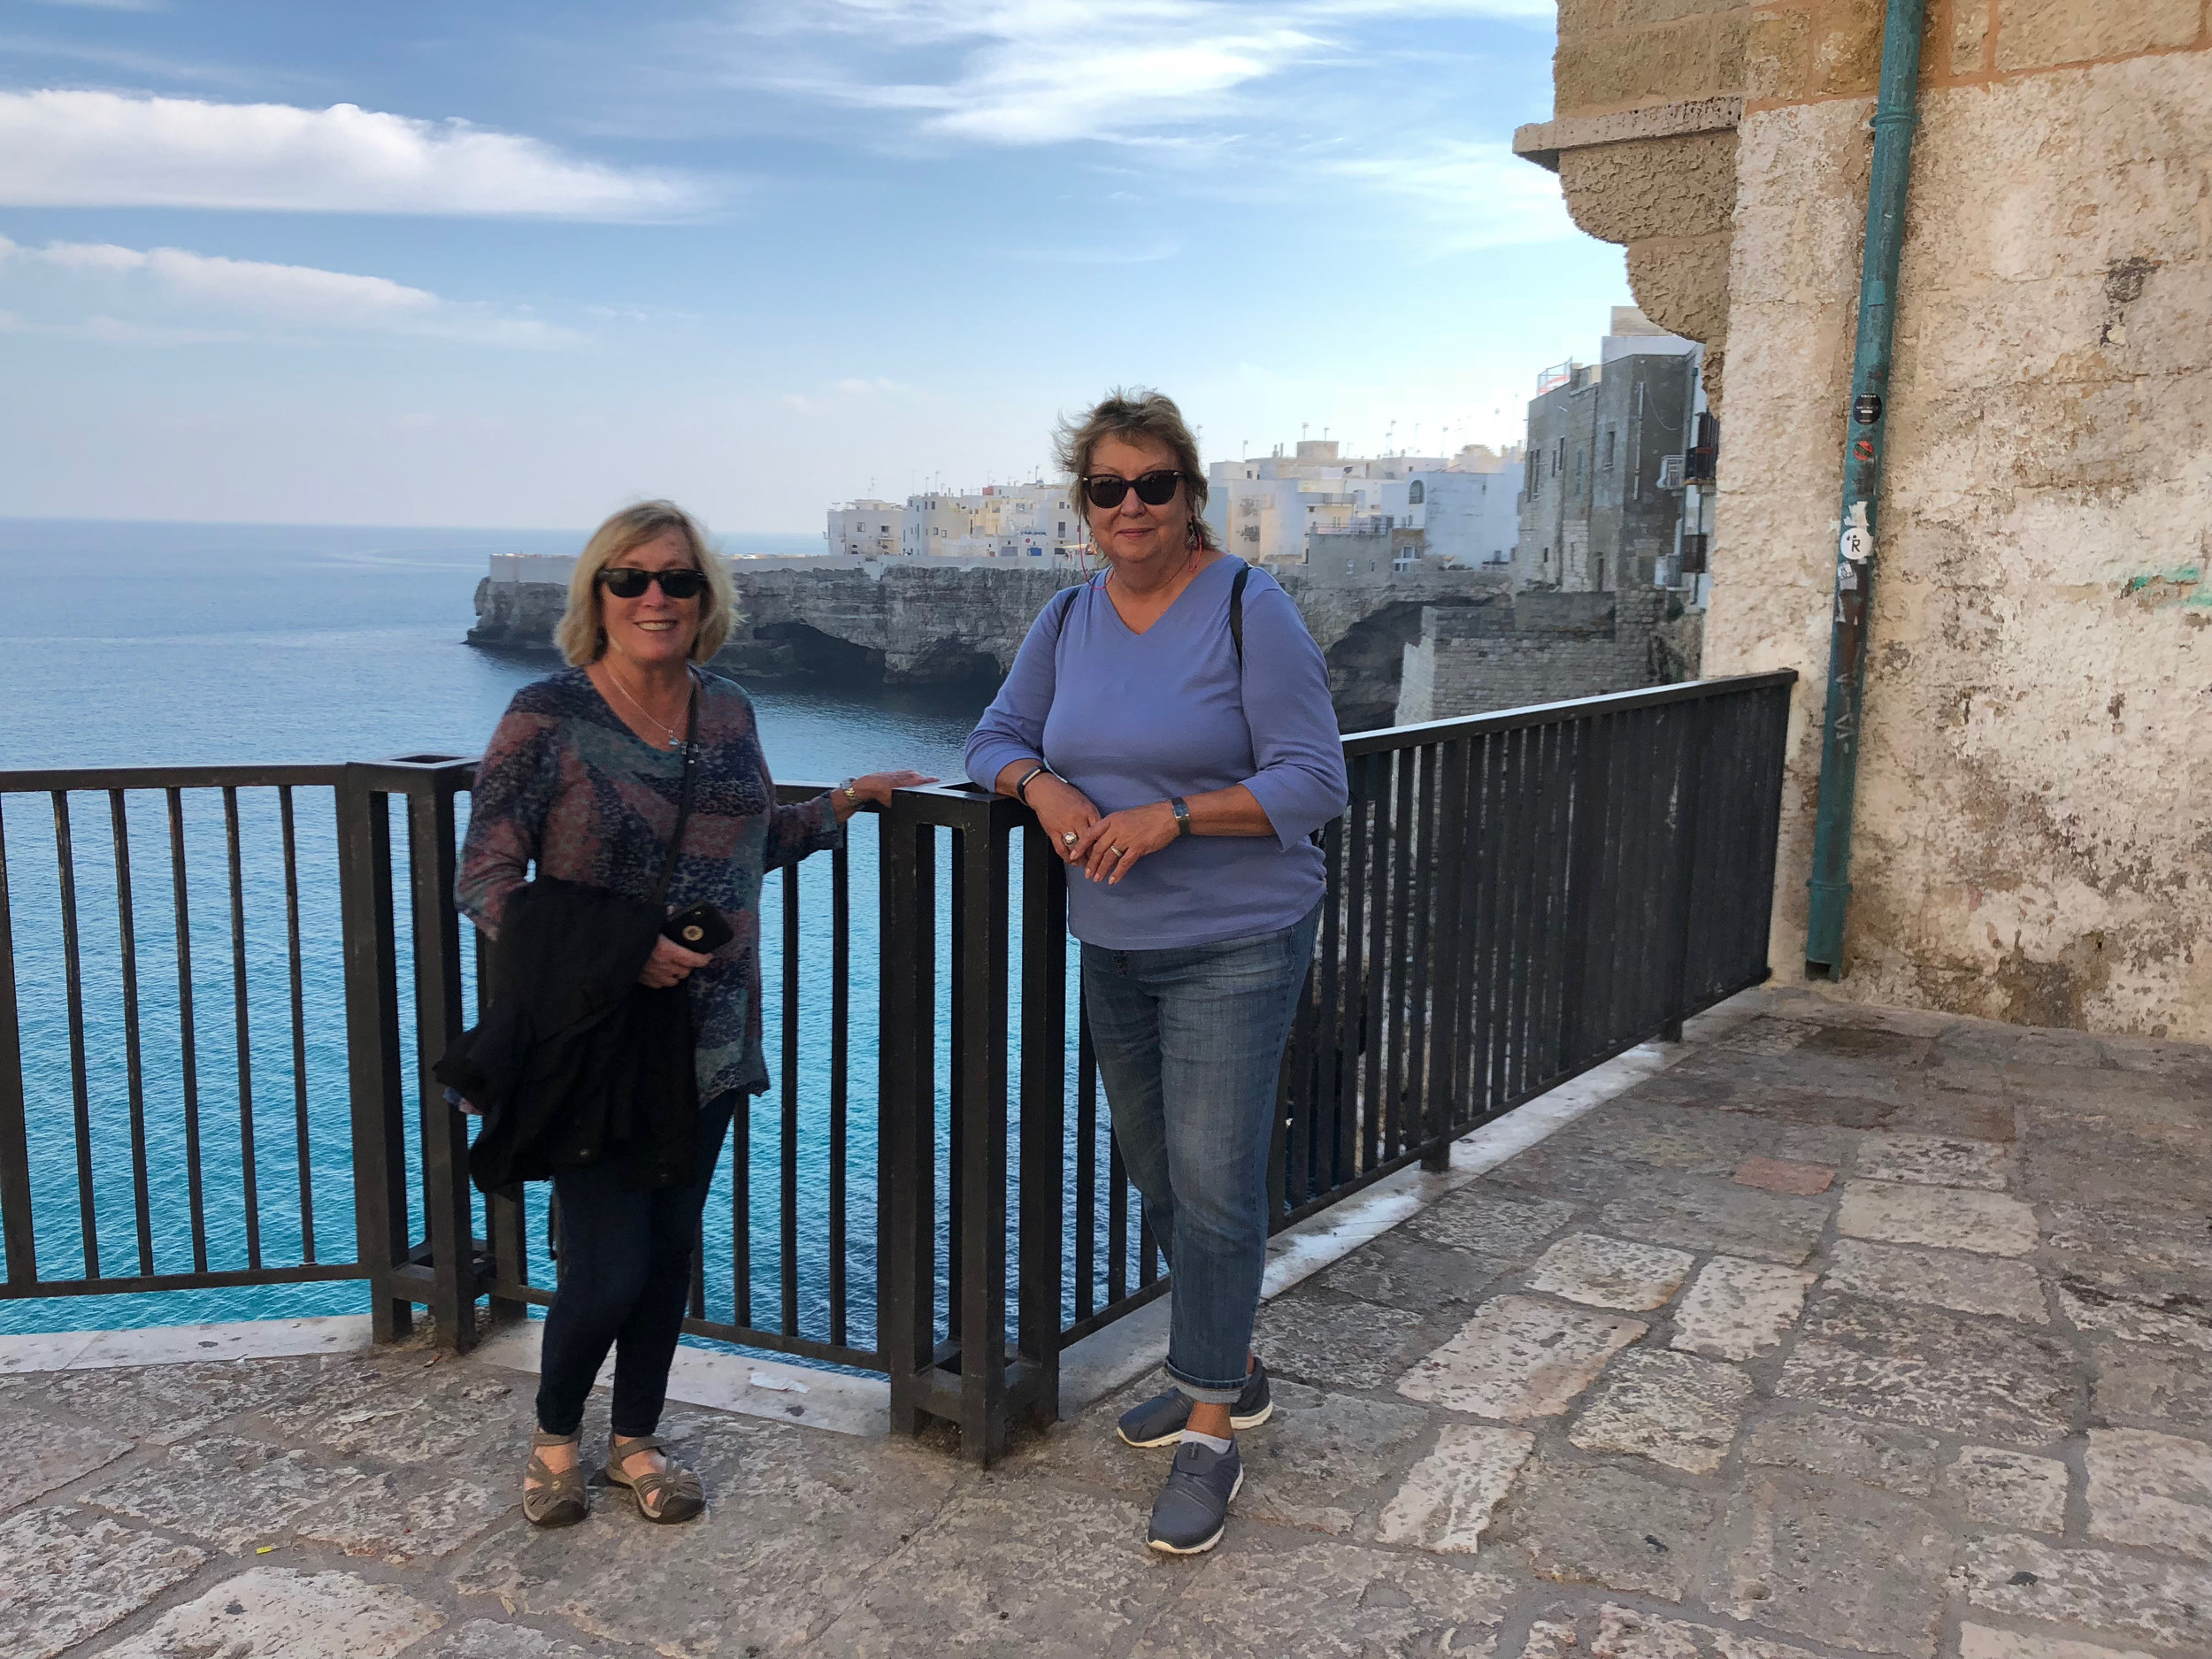 travelers betsy & kathy enjoy the sea views from the streets of polignano a mare in puglia